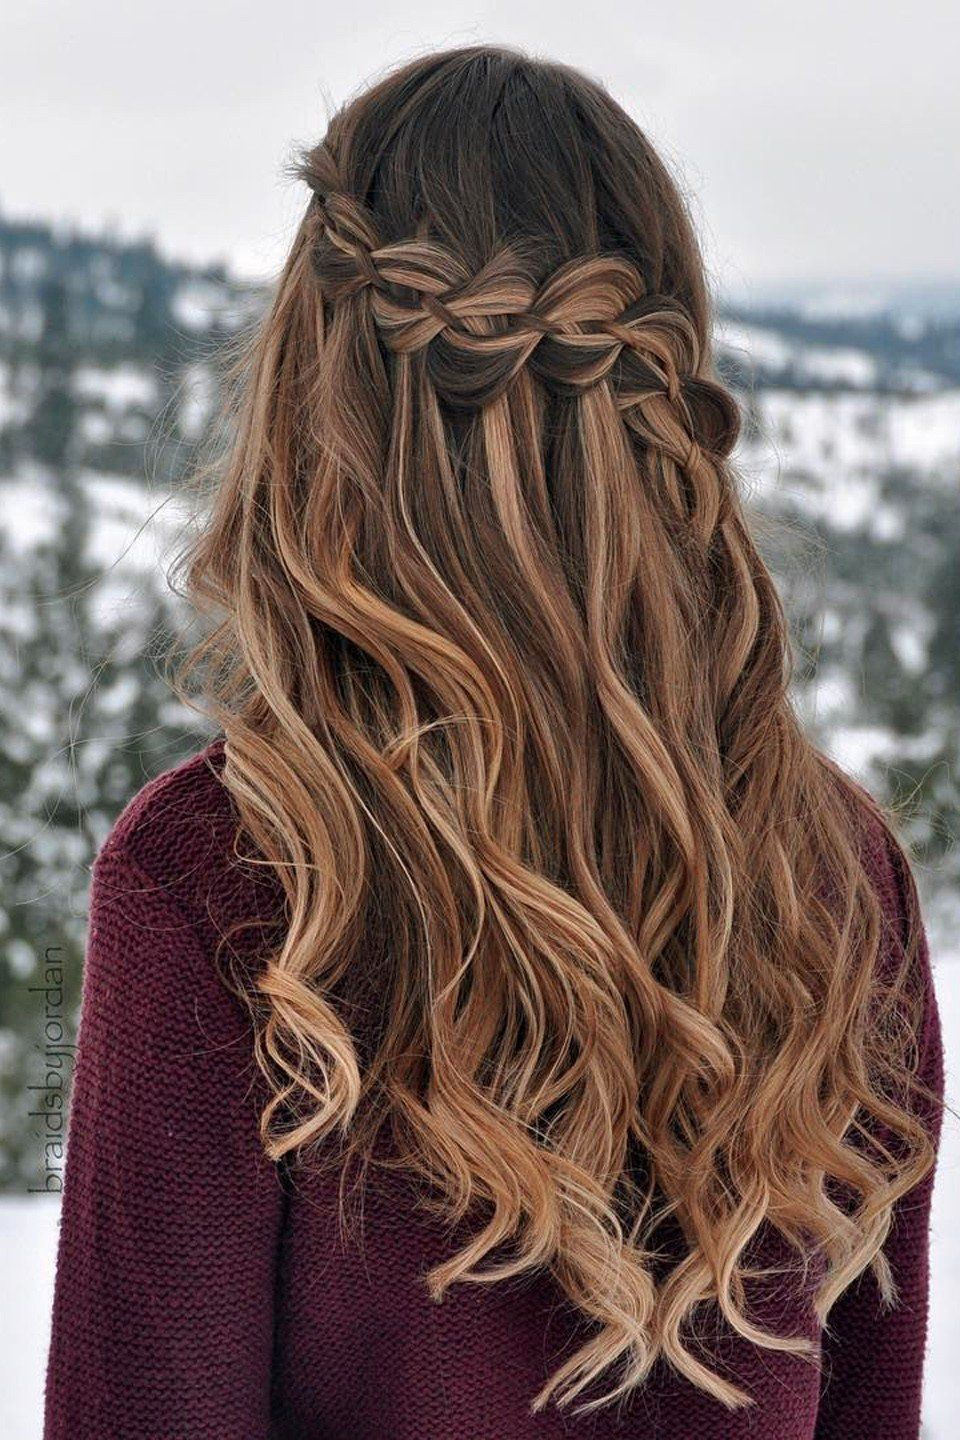 hairstylists you need to follow this season for party-hair